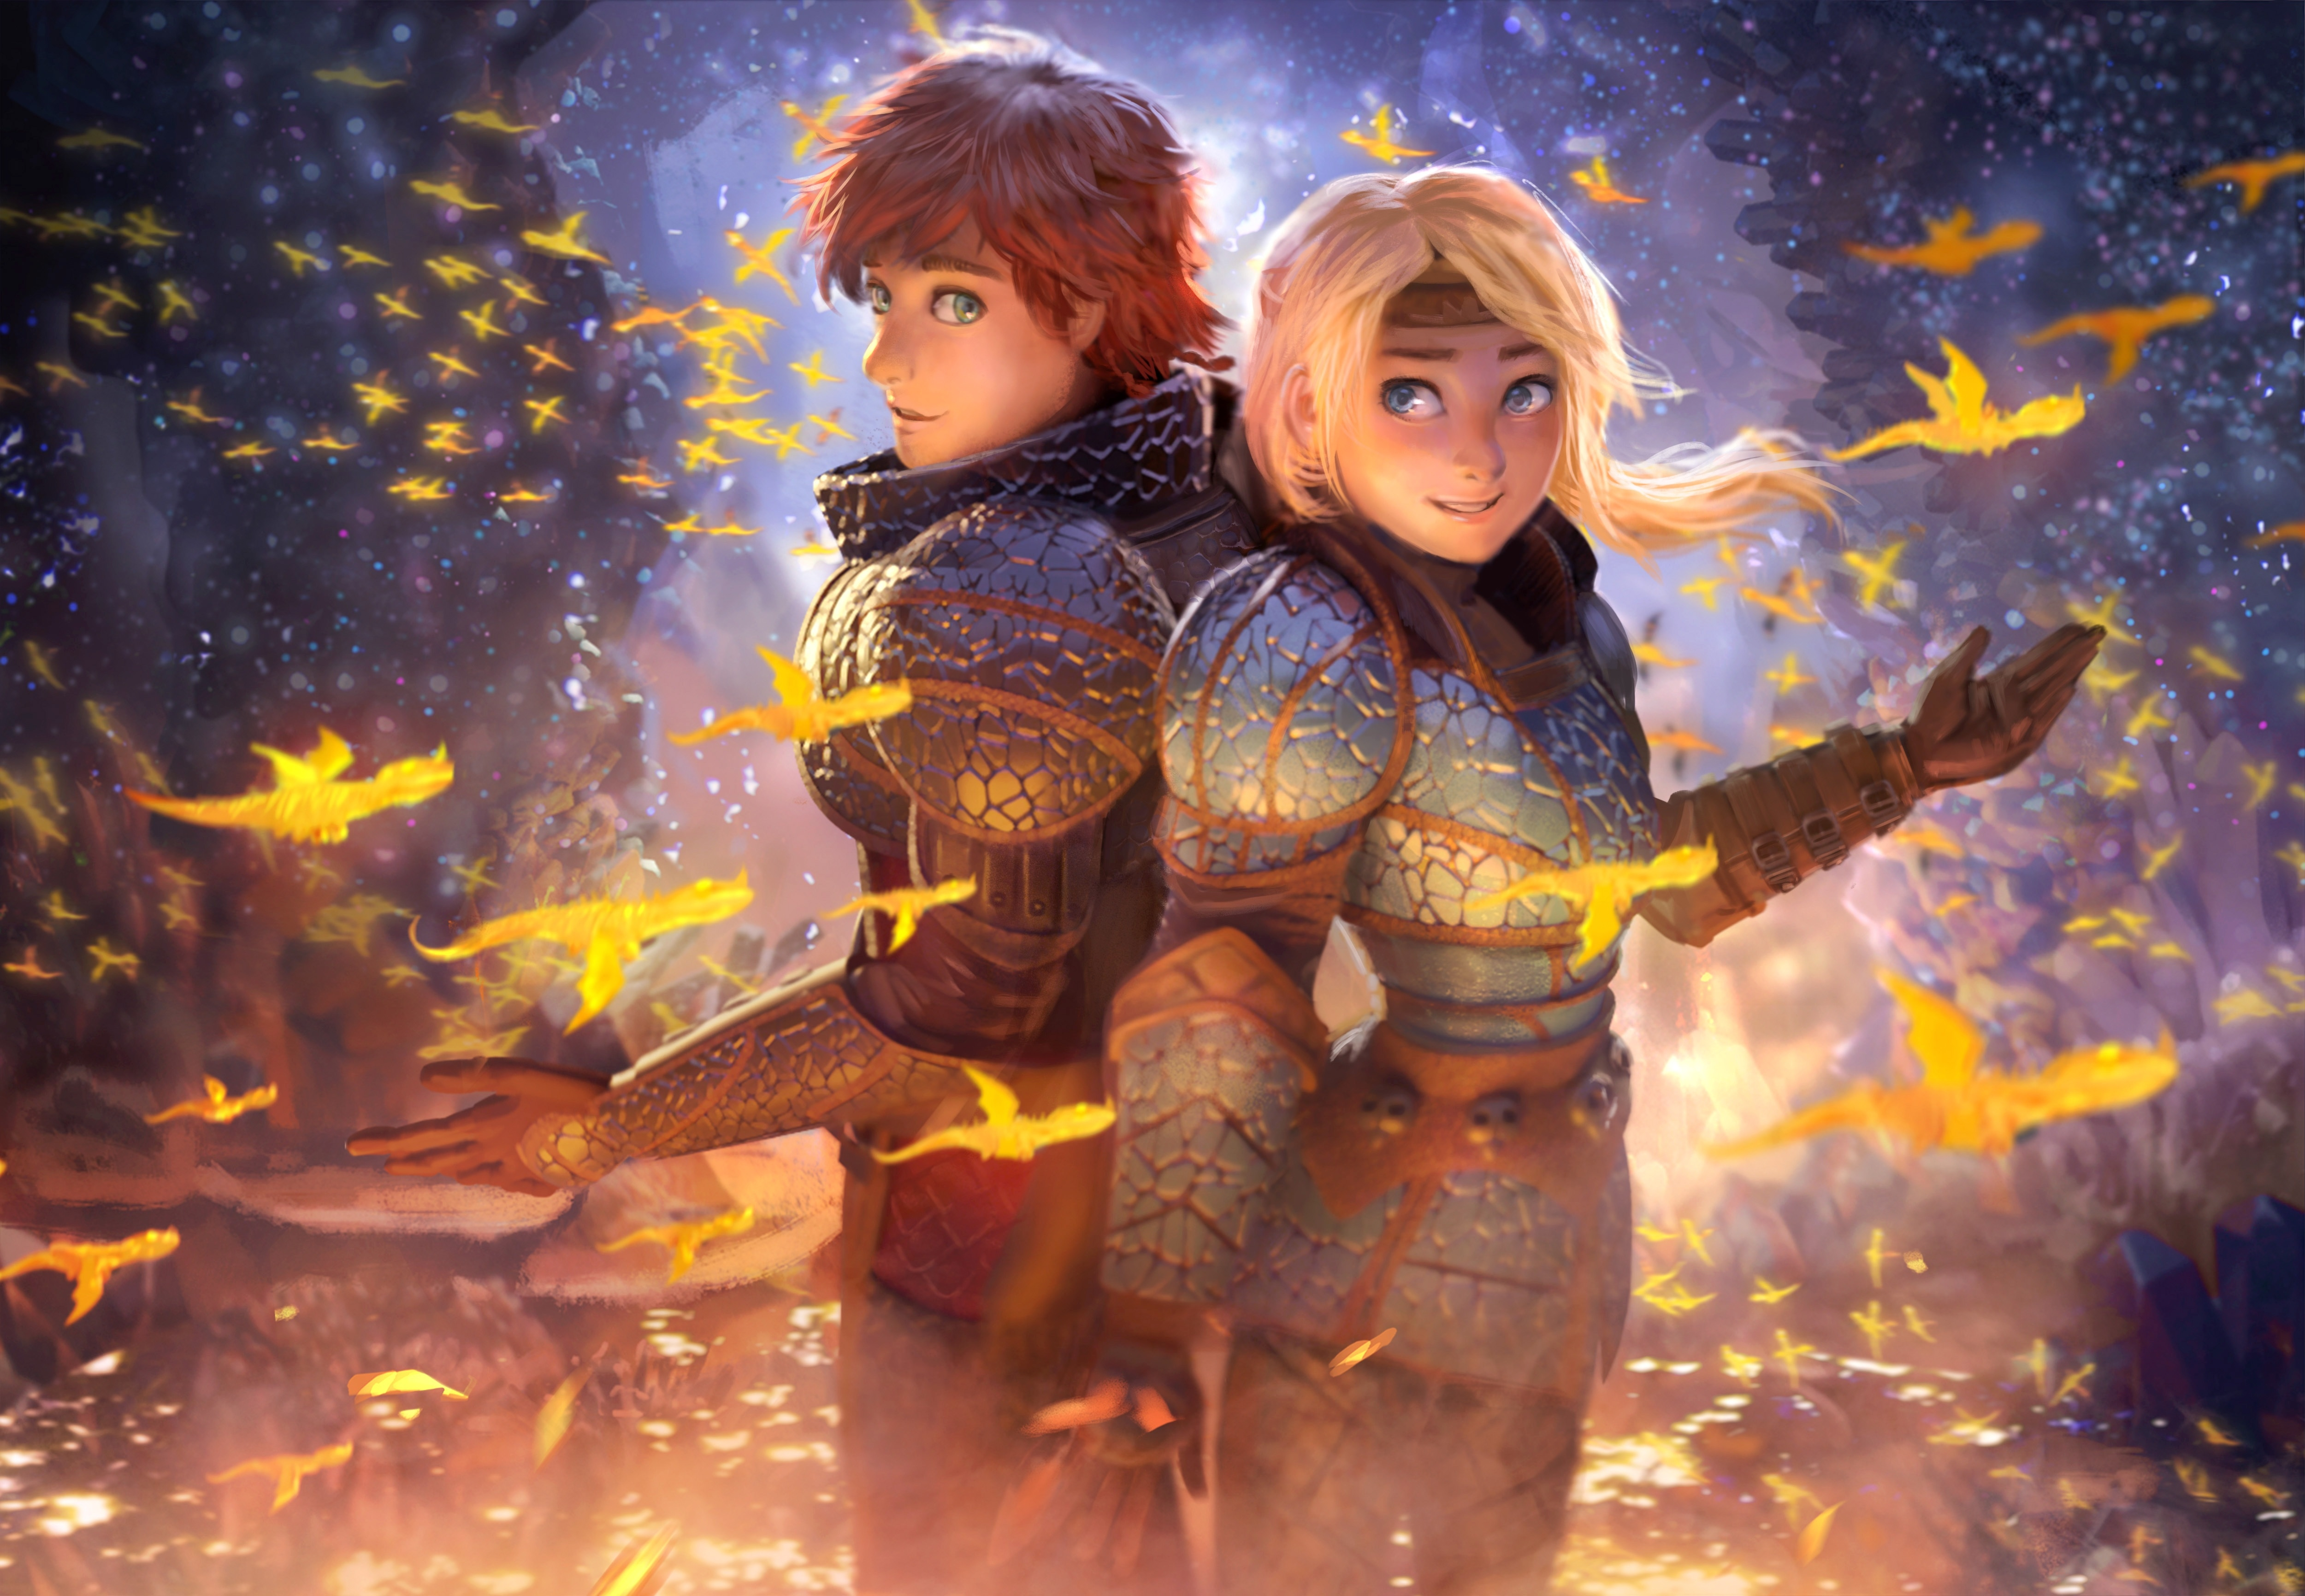 2560x1080 How To Train Your Dragon The Hidden World Movie